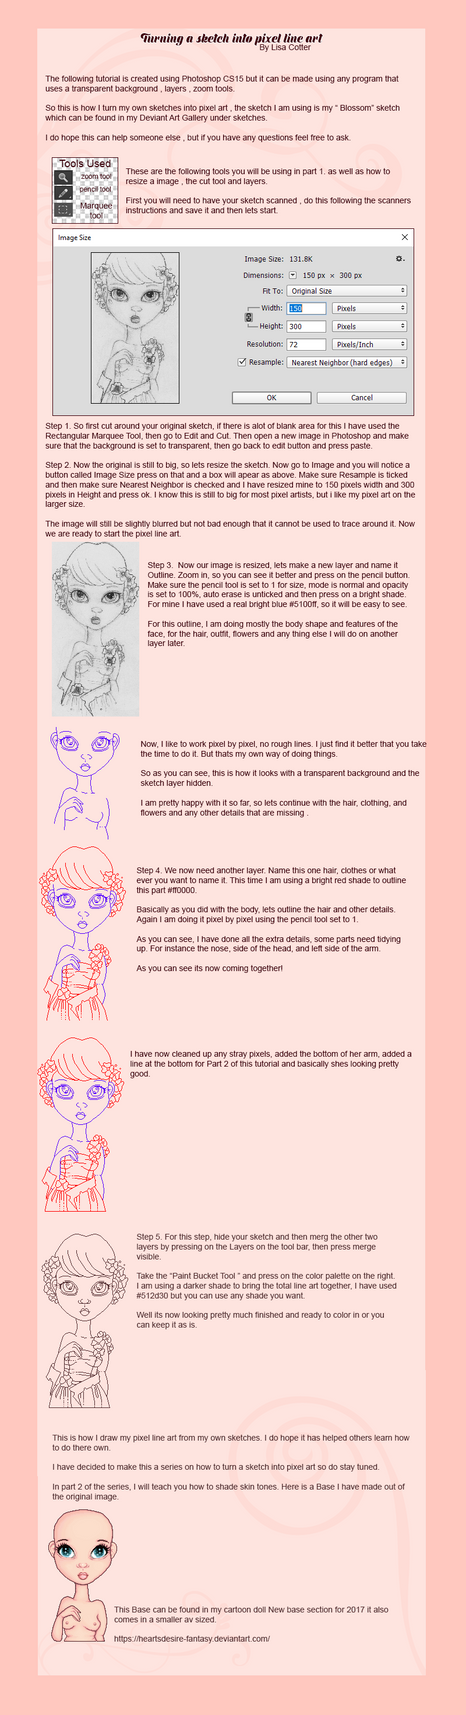 How to turn a sketch into pixel line art tutorial by Heartsdesire-fantasy